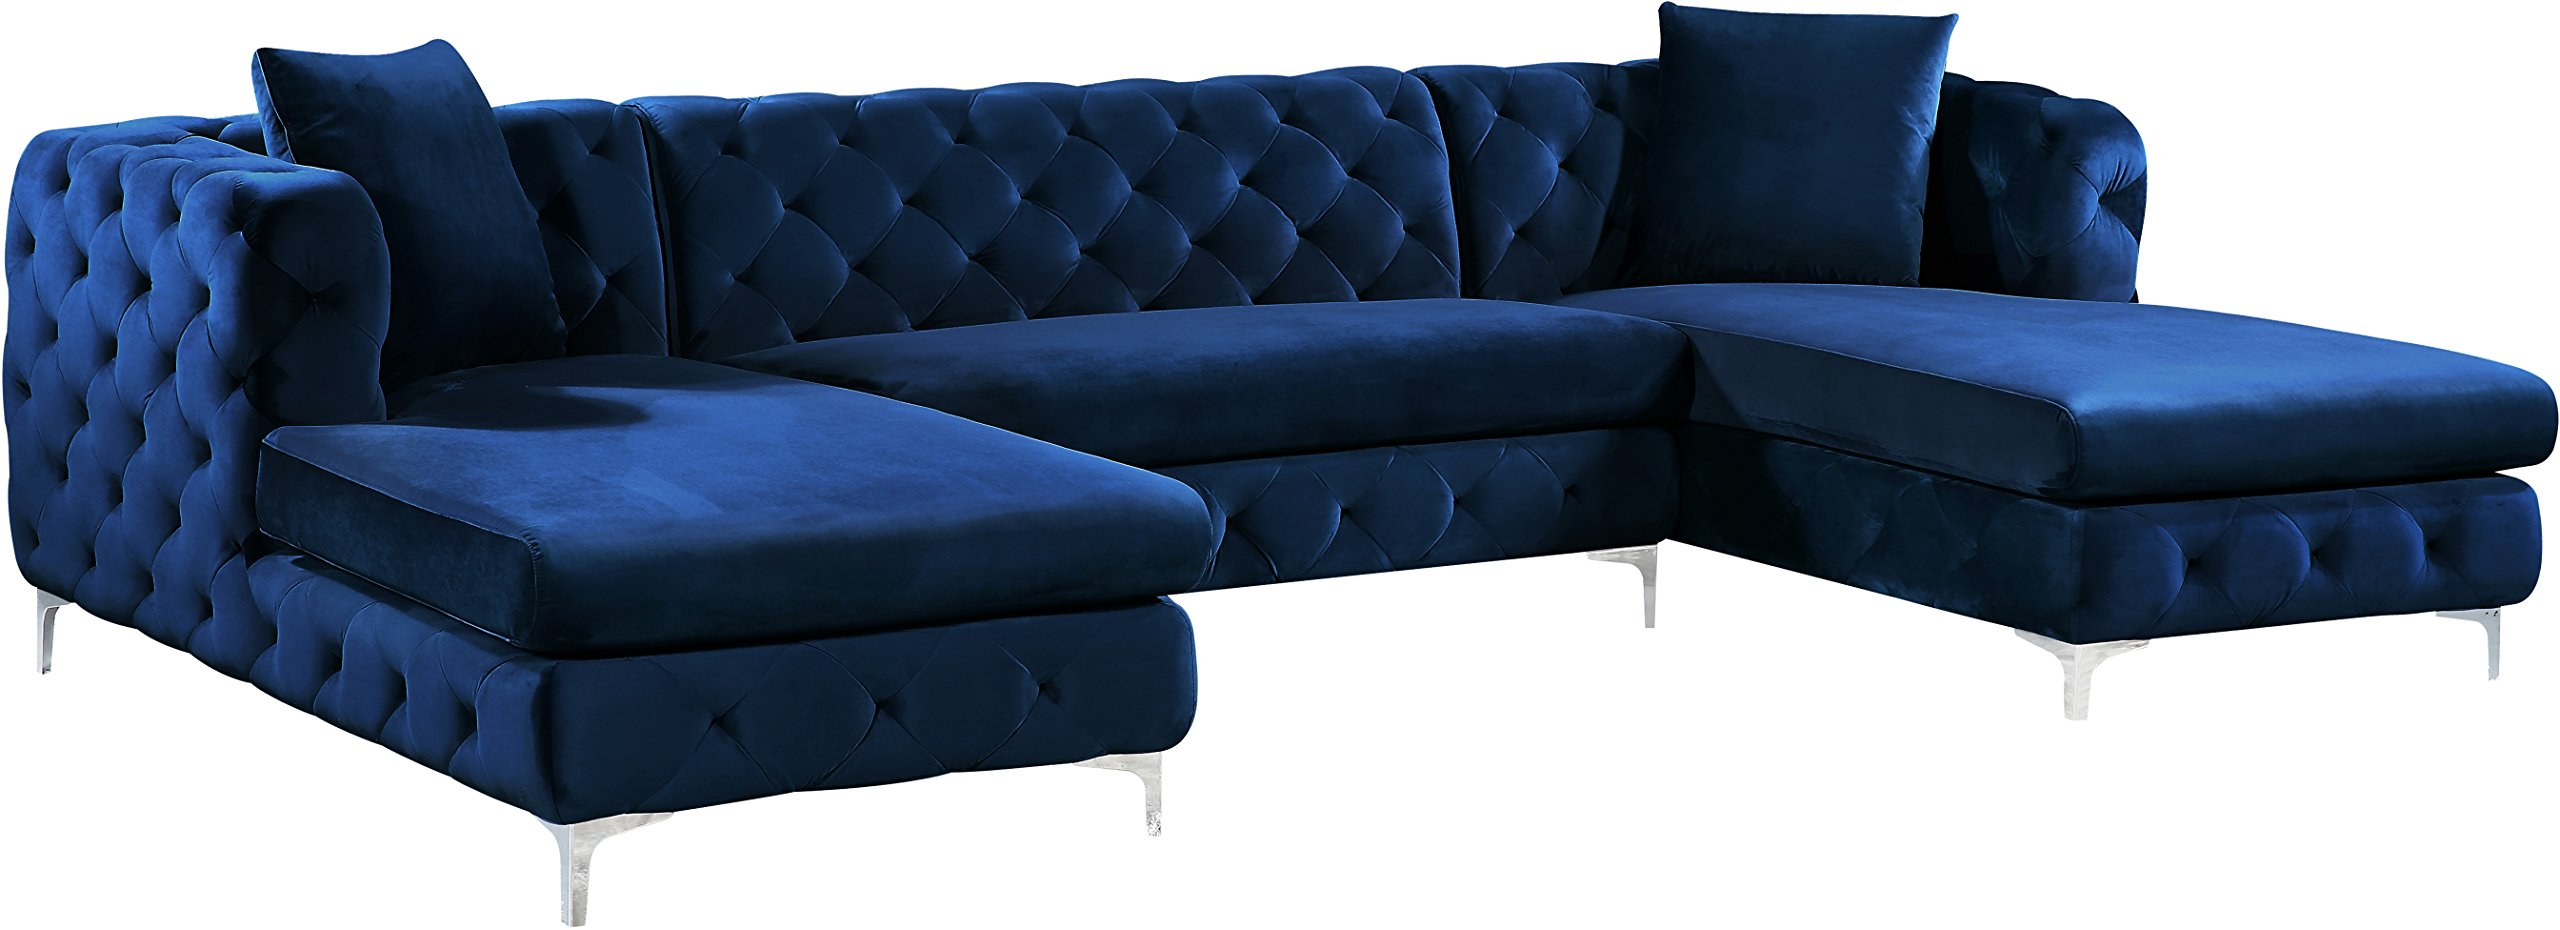 Meridian Furniture Gail Collection Modern | Contemporary Velvet 3 Piece Sectional, 127'' W x 69.5'' D x 30.5'' H, Navy by Meridian Furniture